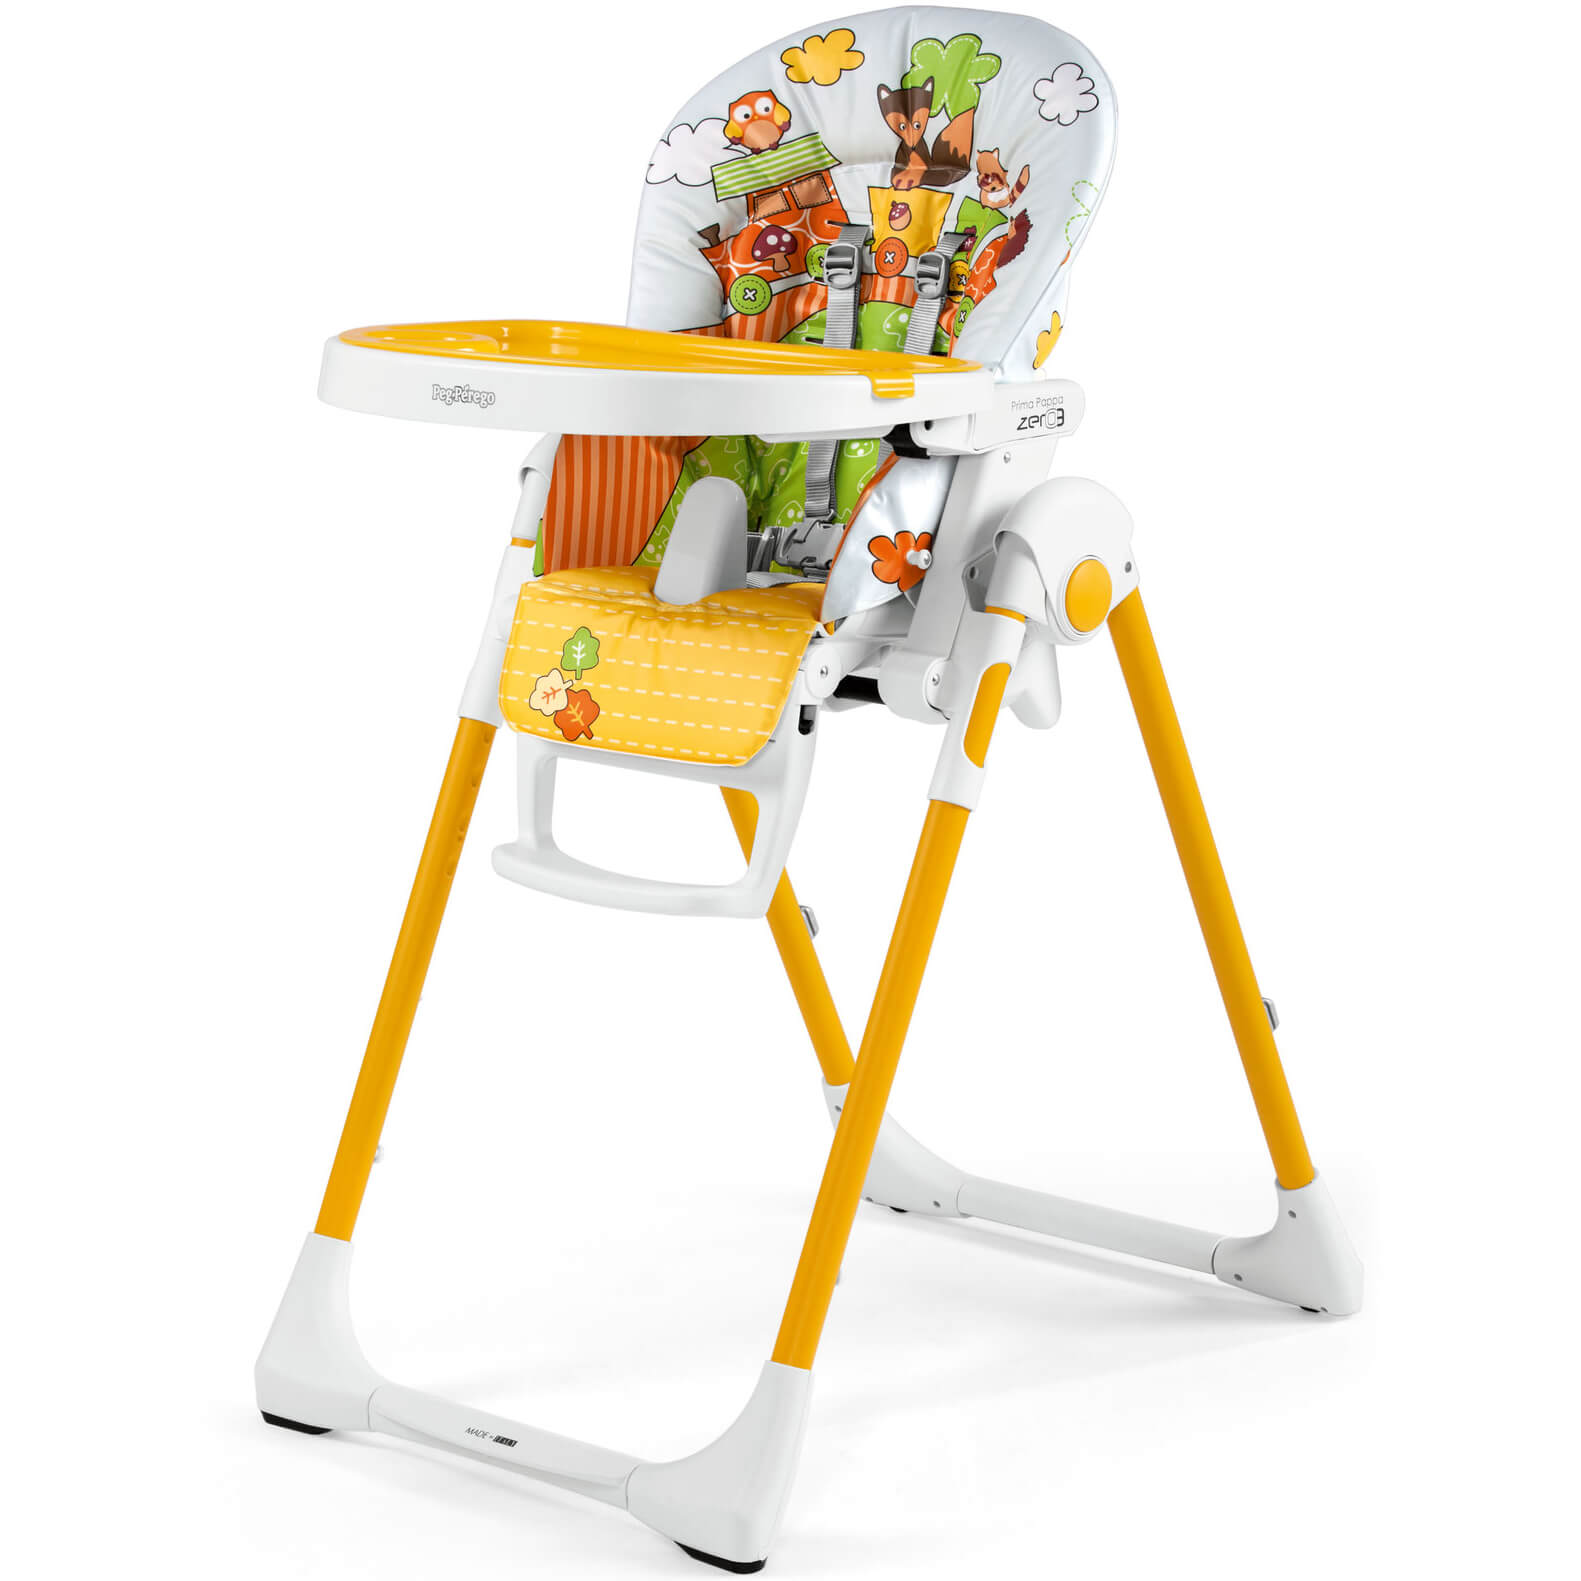 Peg Perego Prima Pappa Zero3 Fox Friends High Chair Cradle And Chair